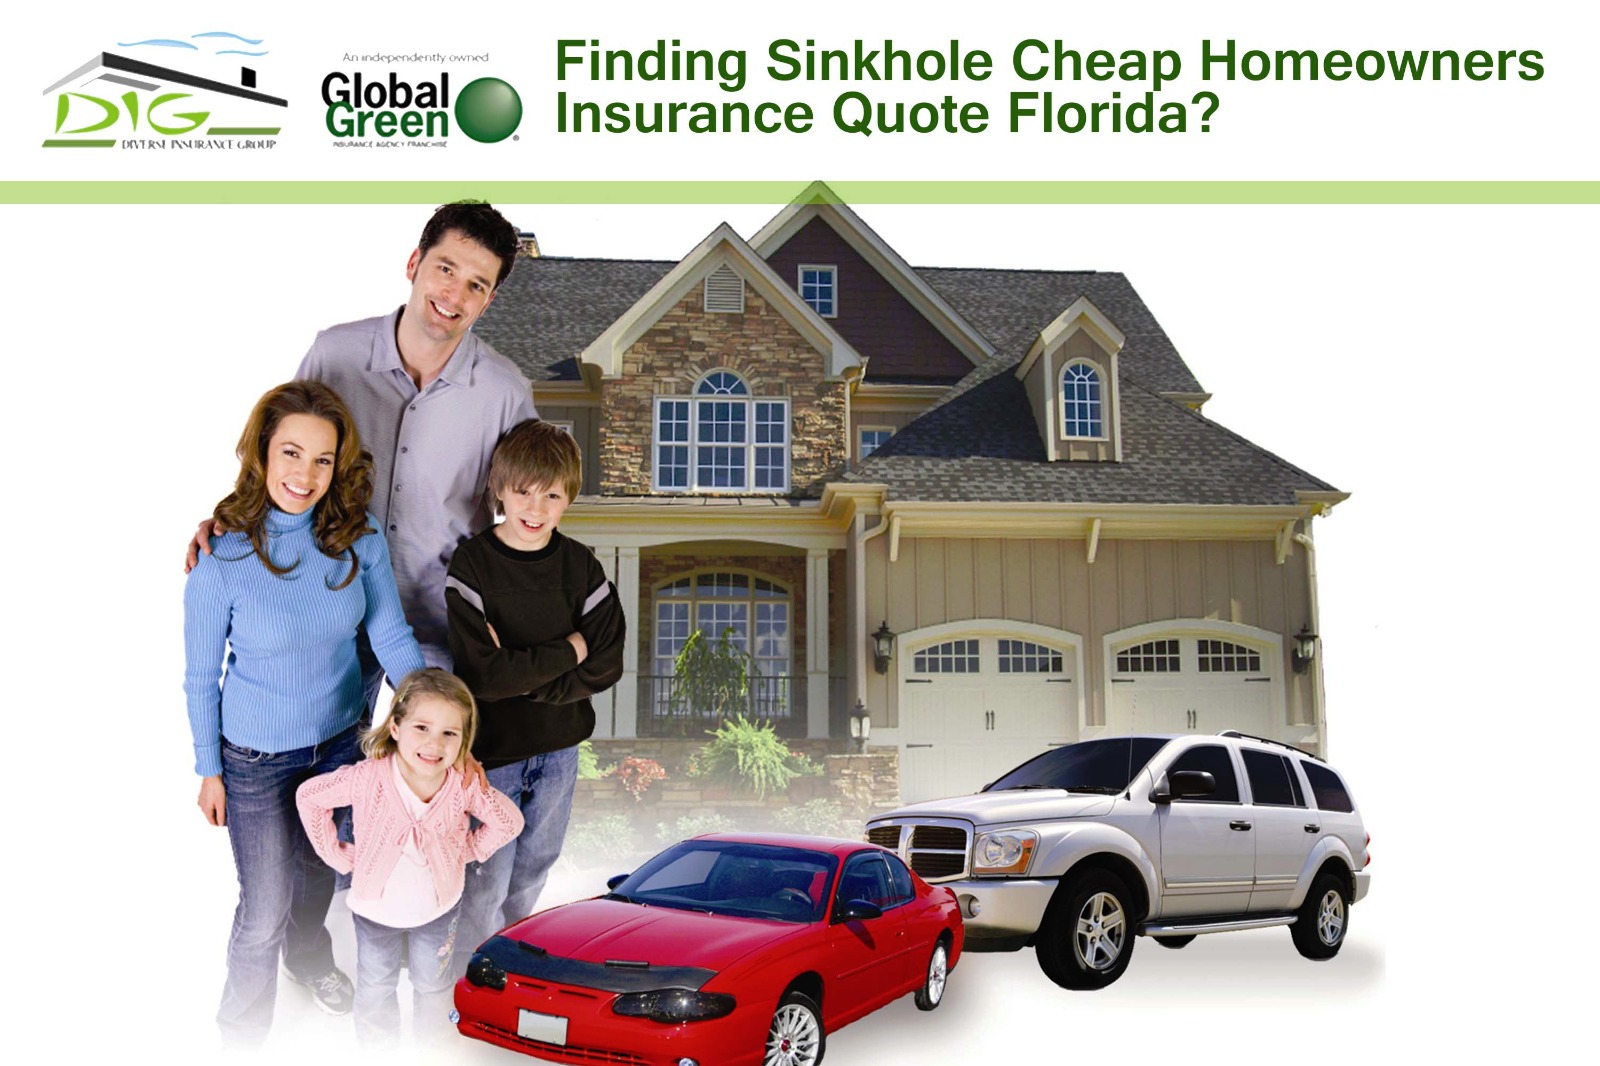 Finding sinkhole cheap homeowners insurance quote florida Homeowners insurance florida